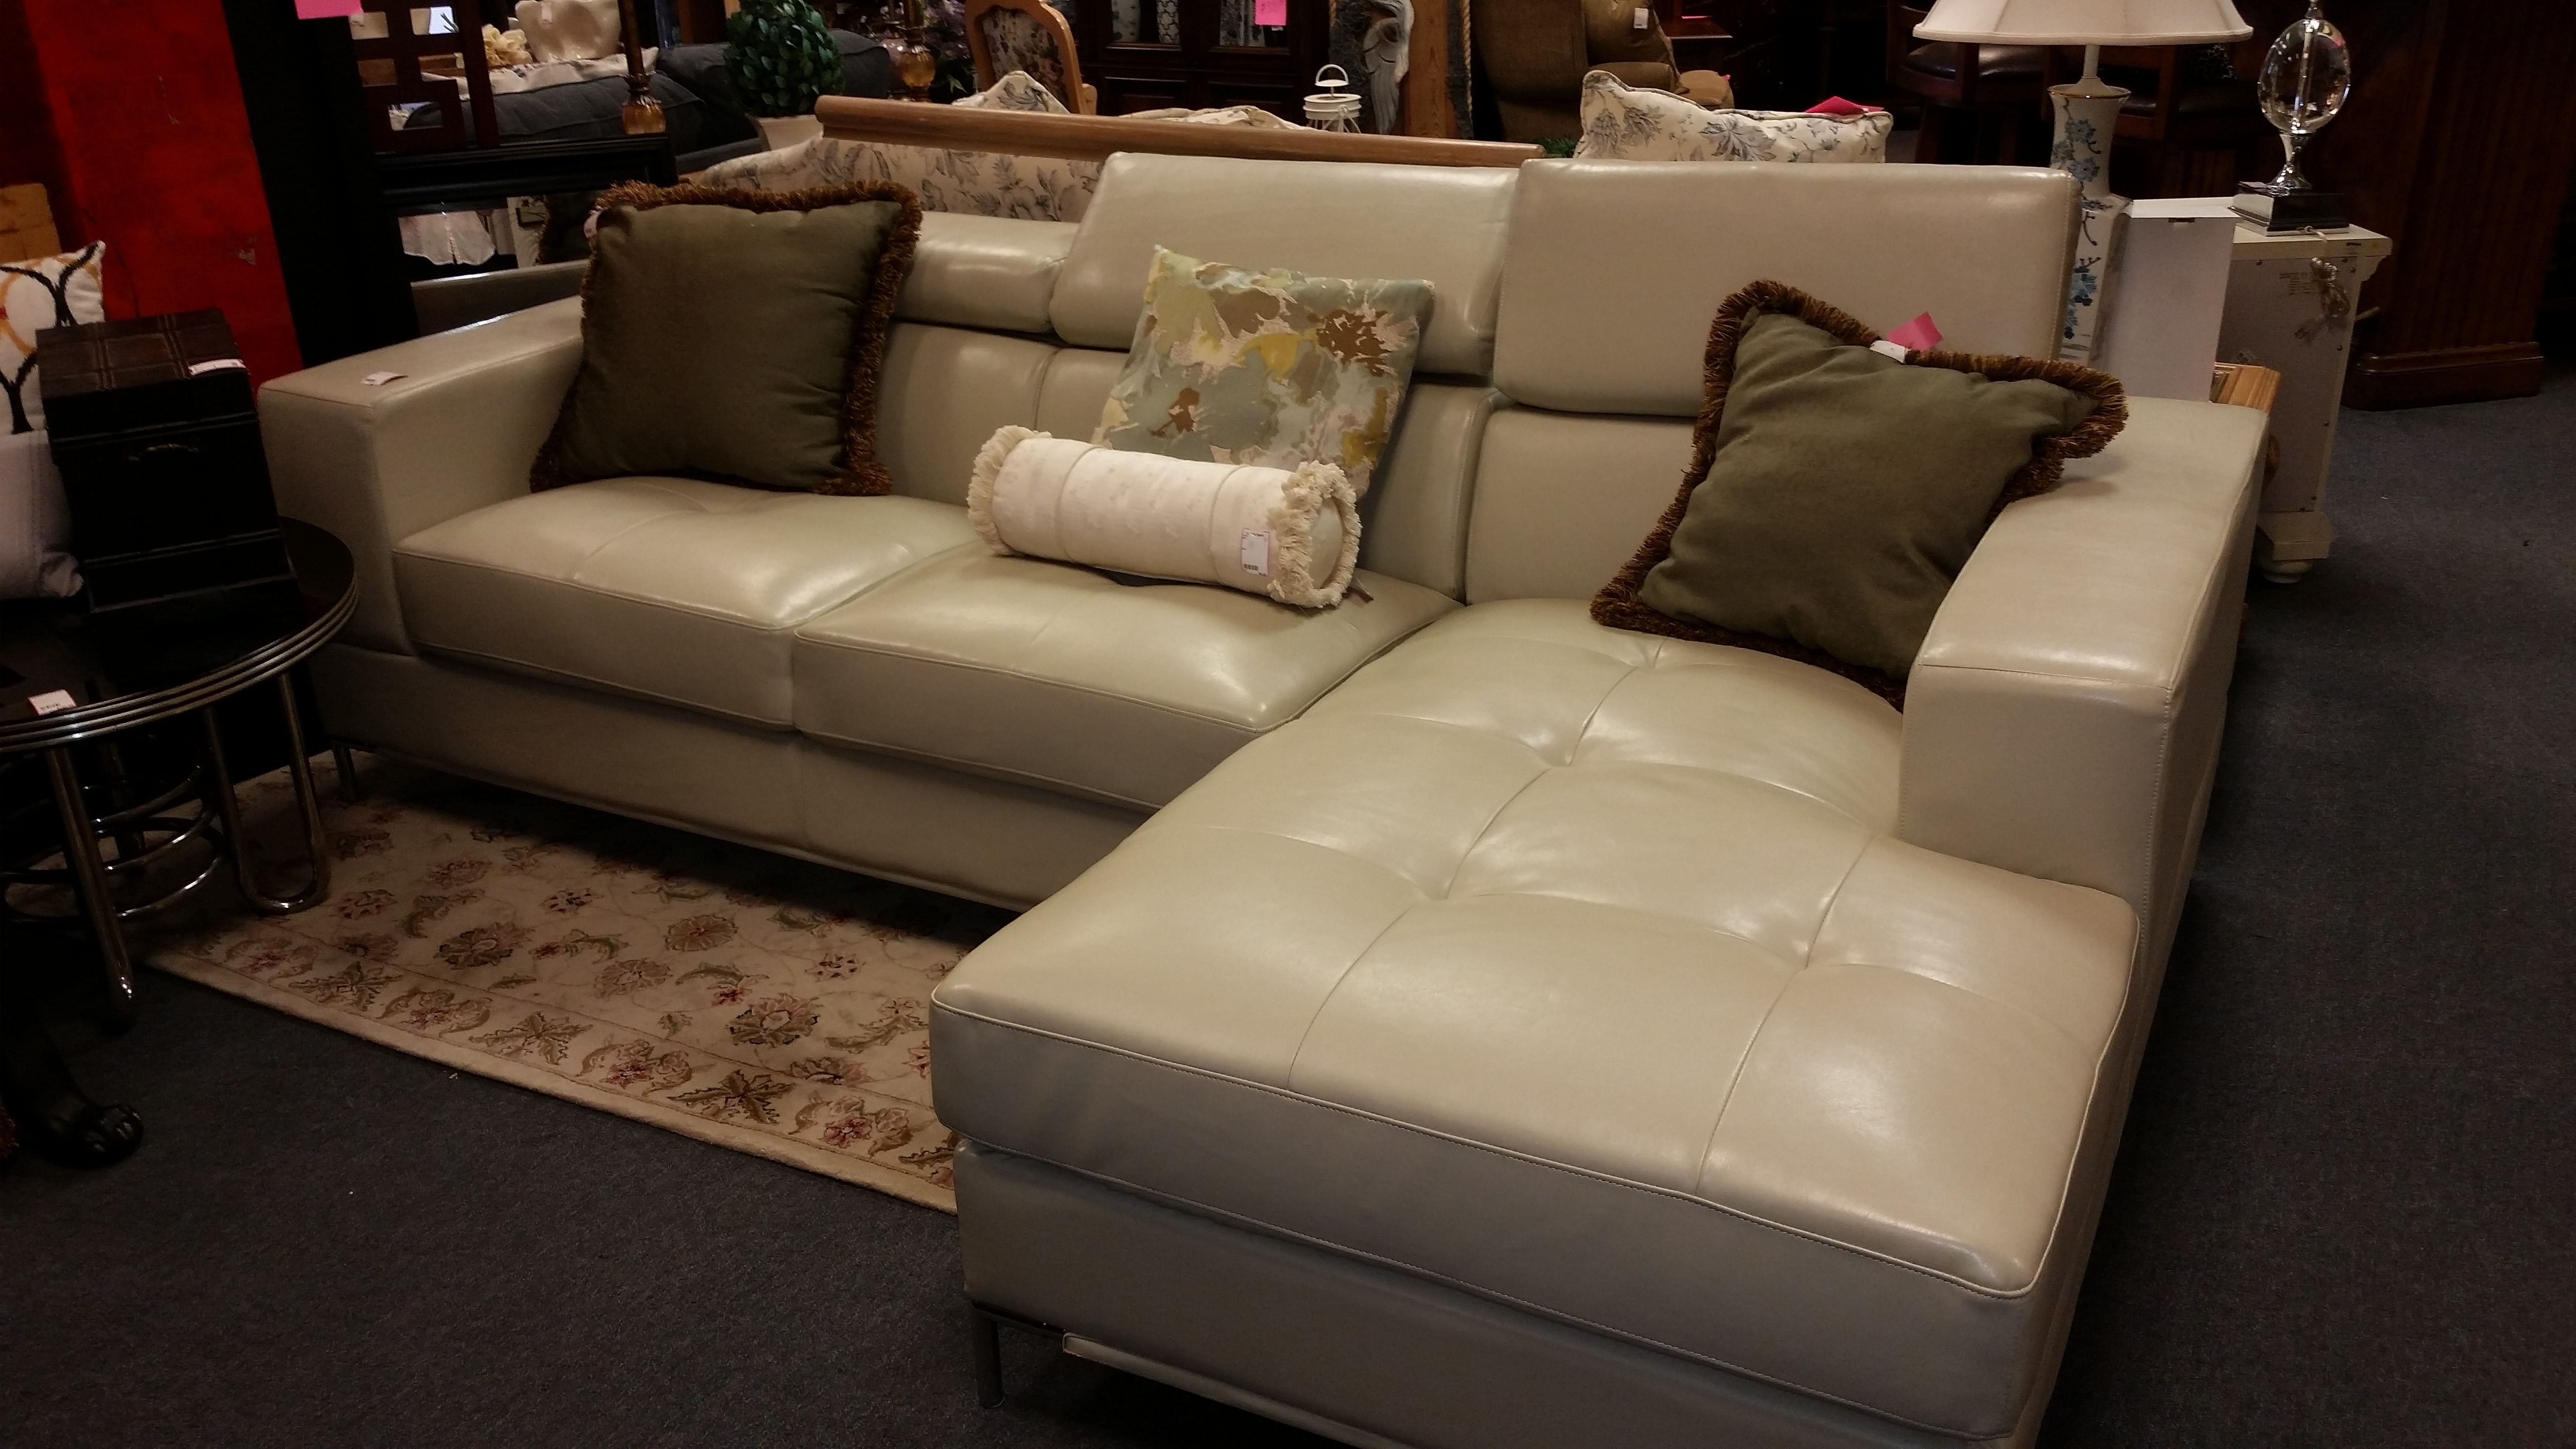 White Blended Leather Sofa Has Adjule Headrests Love It Again Home Decor And Furniture Consignment Lake Mary